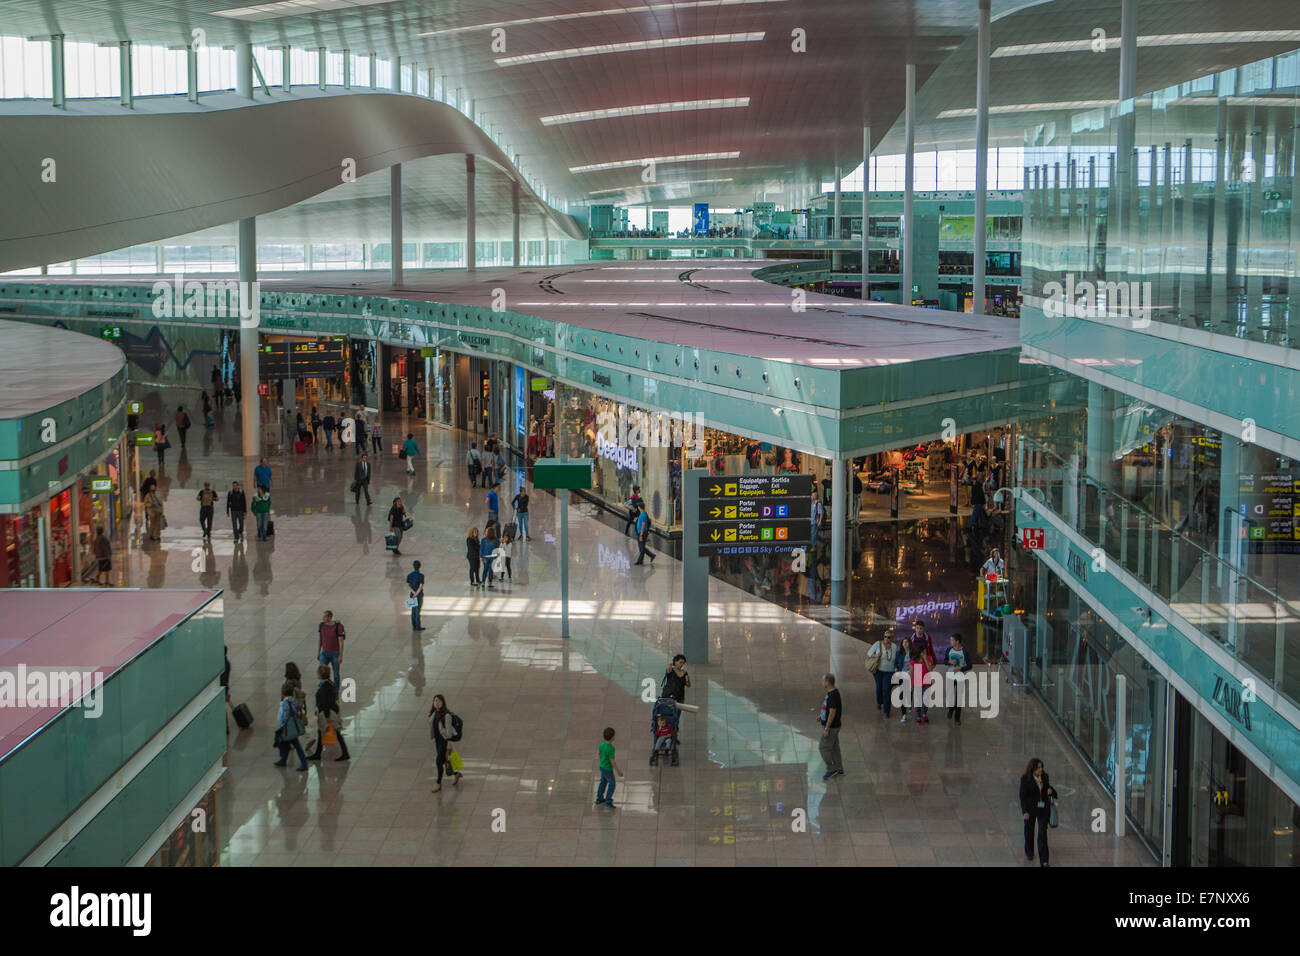 Airport, Barcelona, Catalonia, City, Spain, Europe, Terminal, inside, architecture, hall, new, tourism, transit, - Stock Image